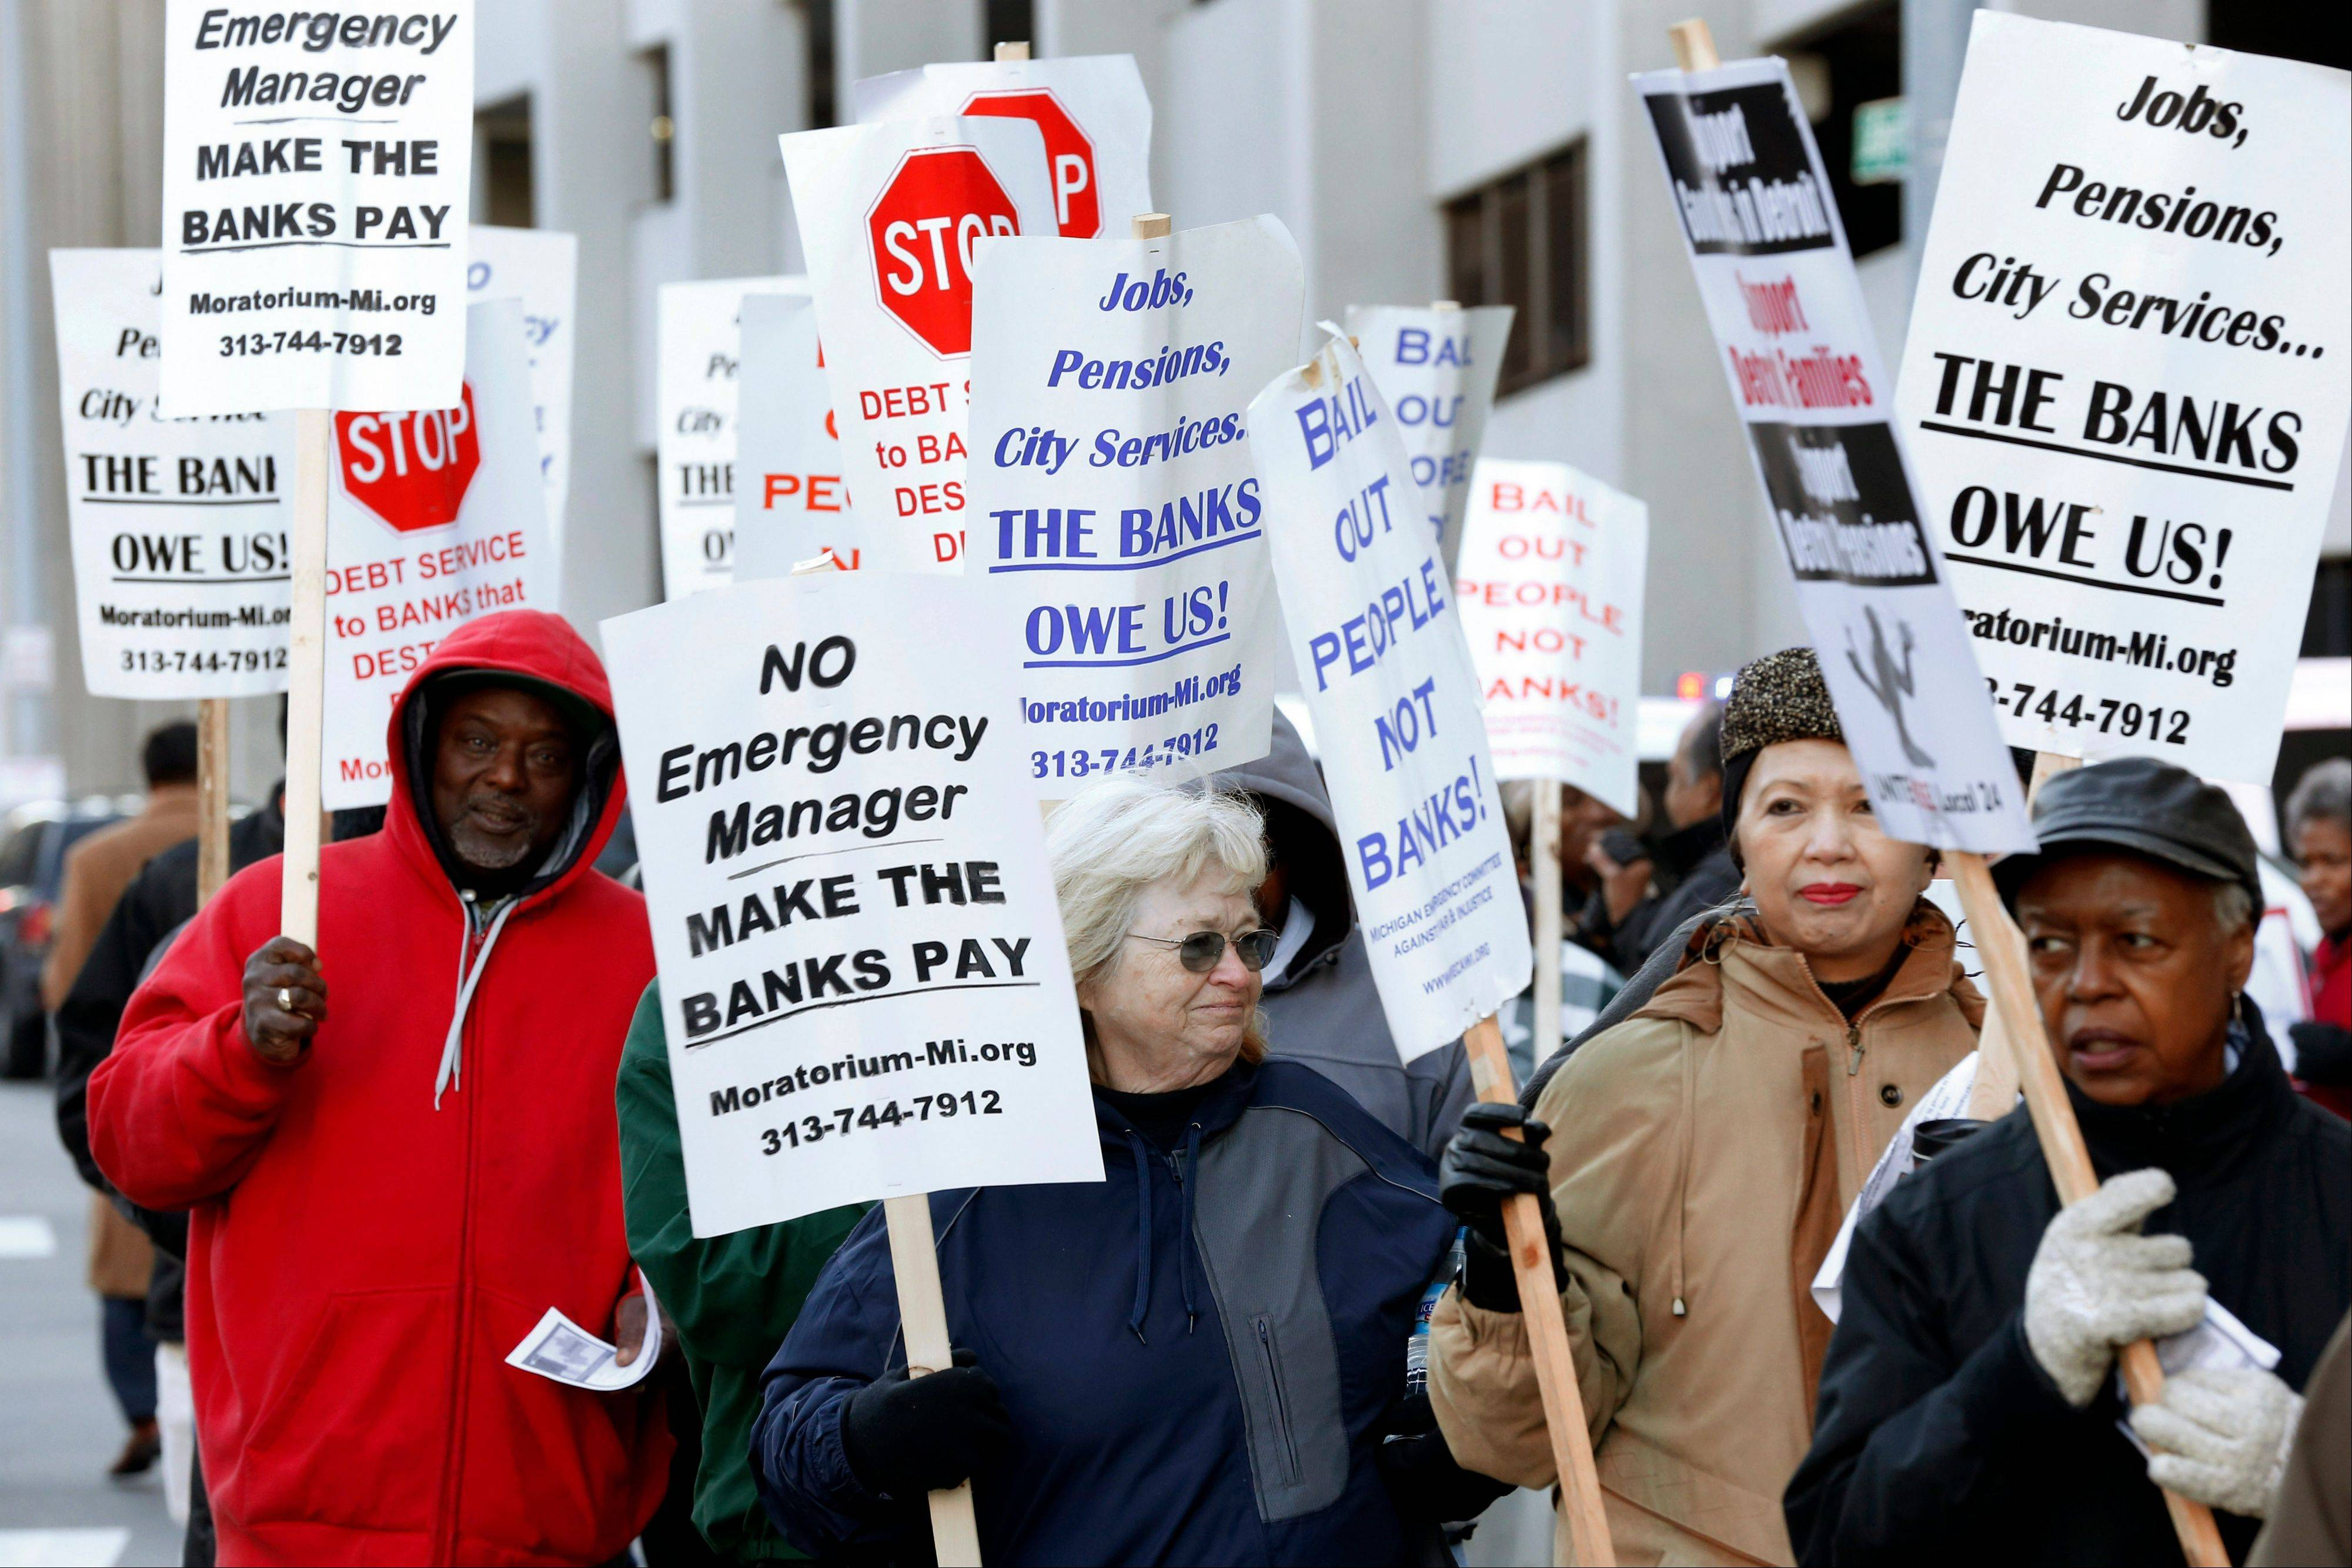 Protesters rally outside federal court in Detroit during a trial to determine if Detroit is eligible to restructure $18 billion in debt. Unions and pensions funds opposed to bankruptcy claim there was a lack of good-faith negotiations with creditors before the Chapter 9 filing.